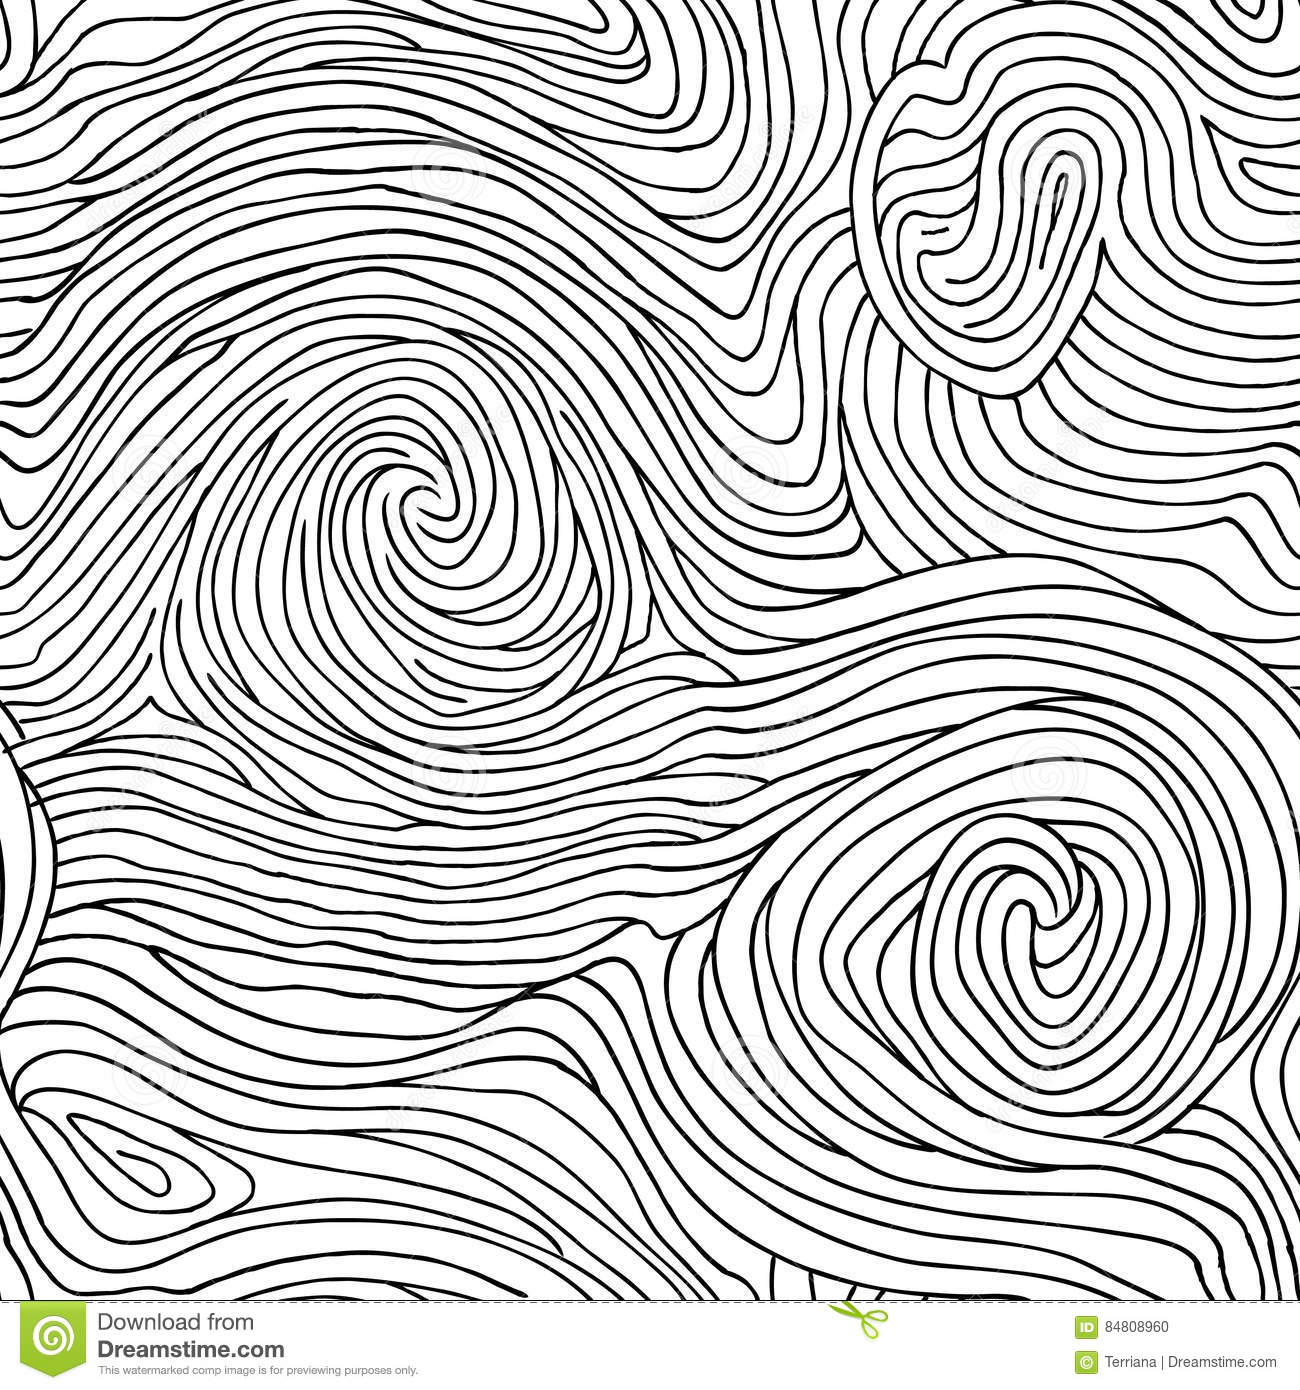 Line Art Texture : Abstract swirl line doodle seamless pattern wooden wave